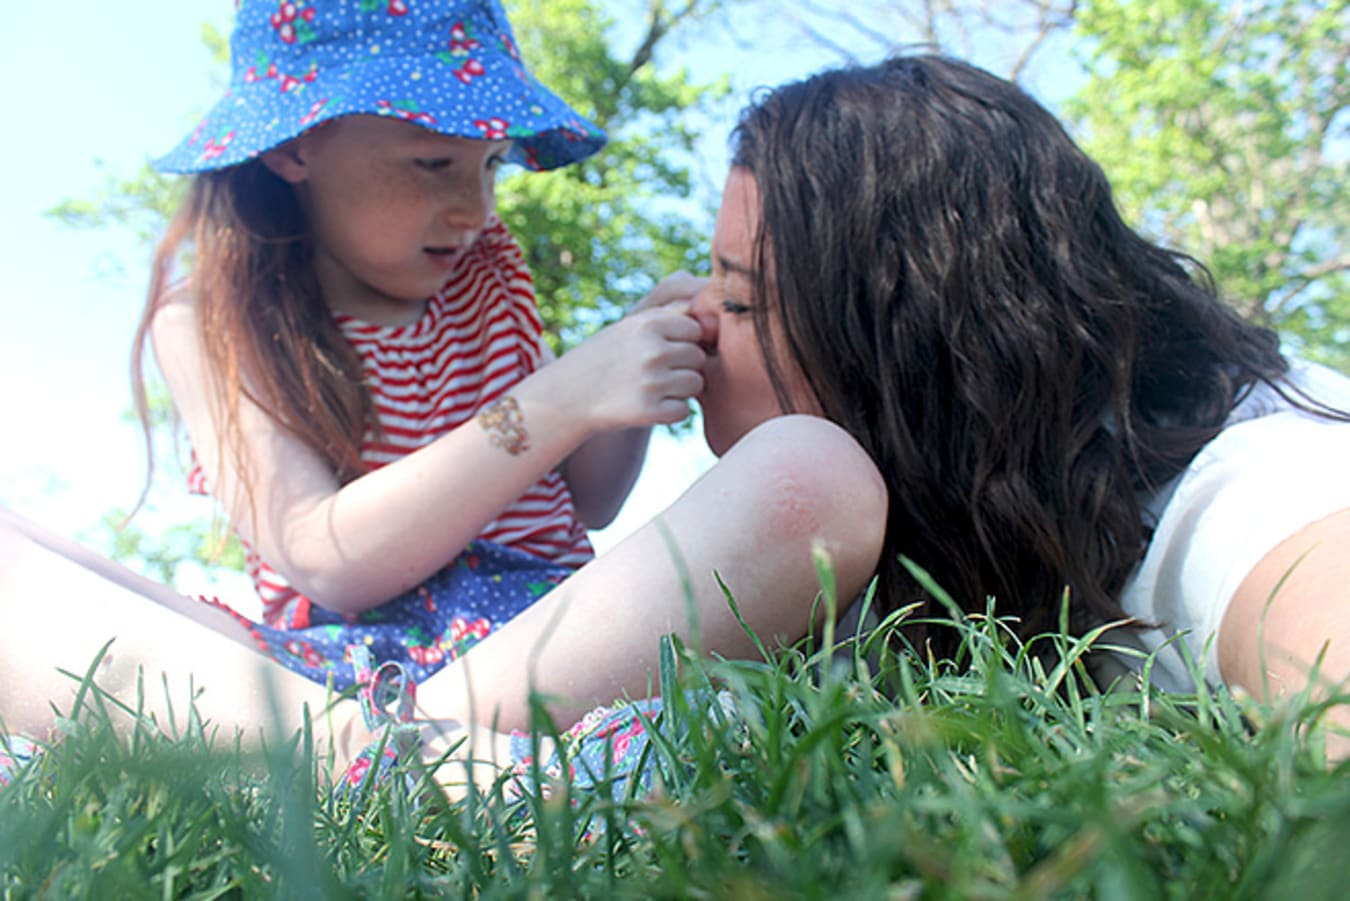 Anna and Katie in Park